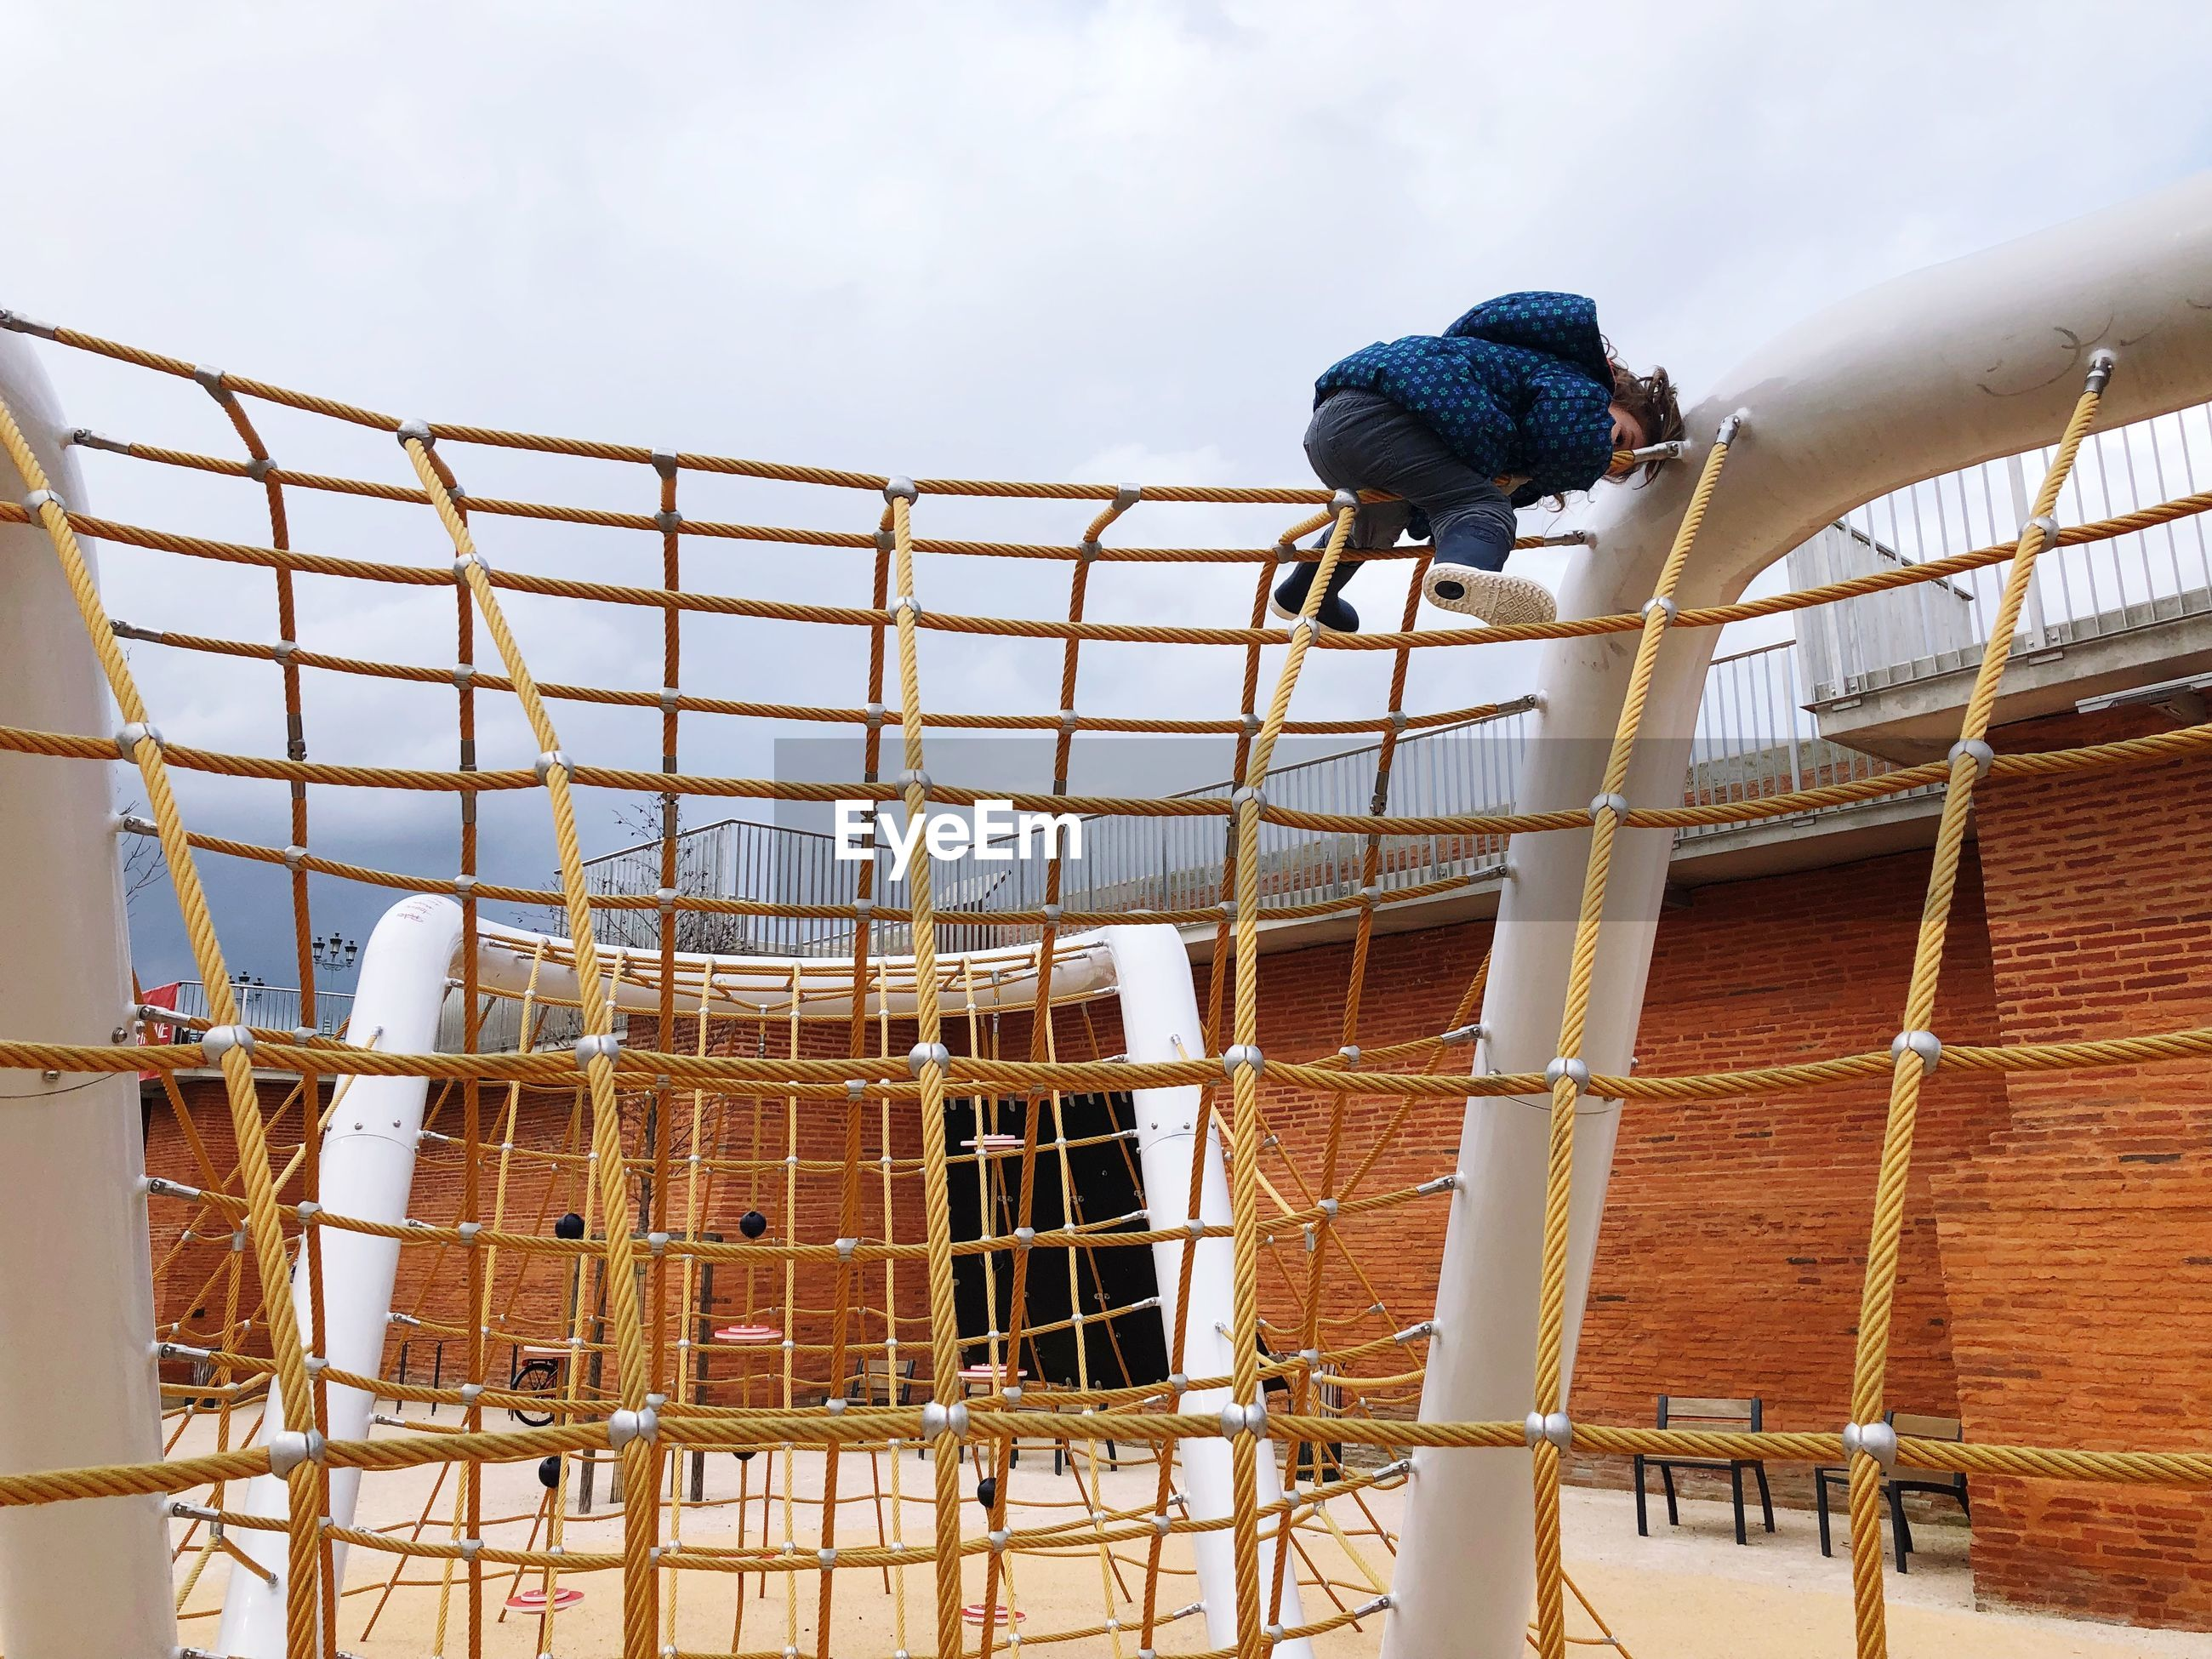 Low angle view of girl playing on outdoor play equipment against cloudy sky